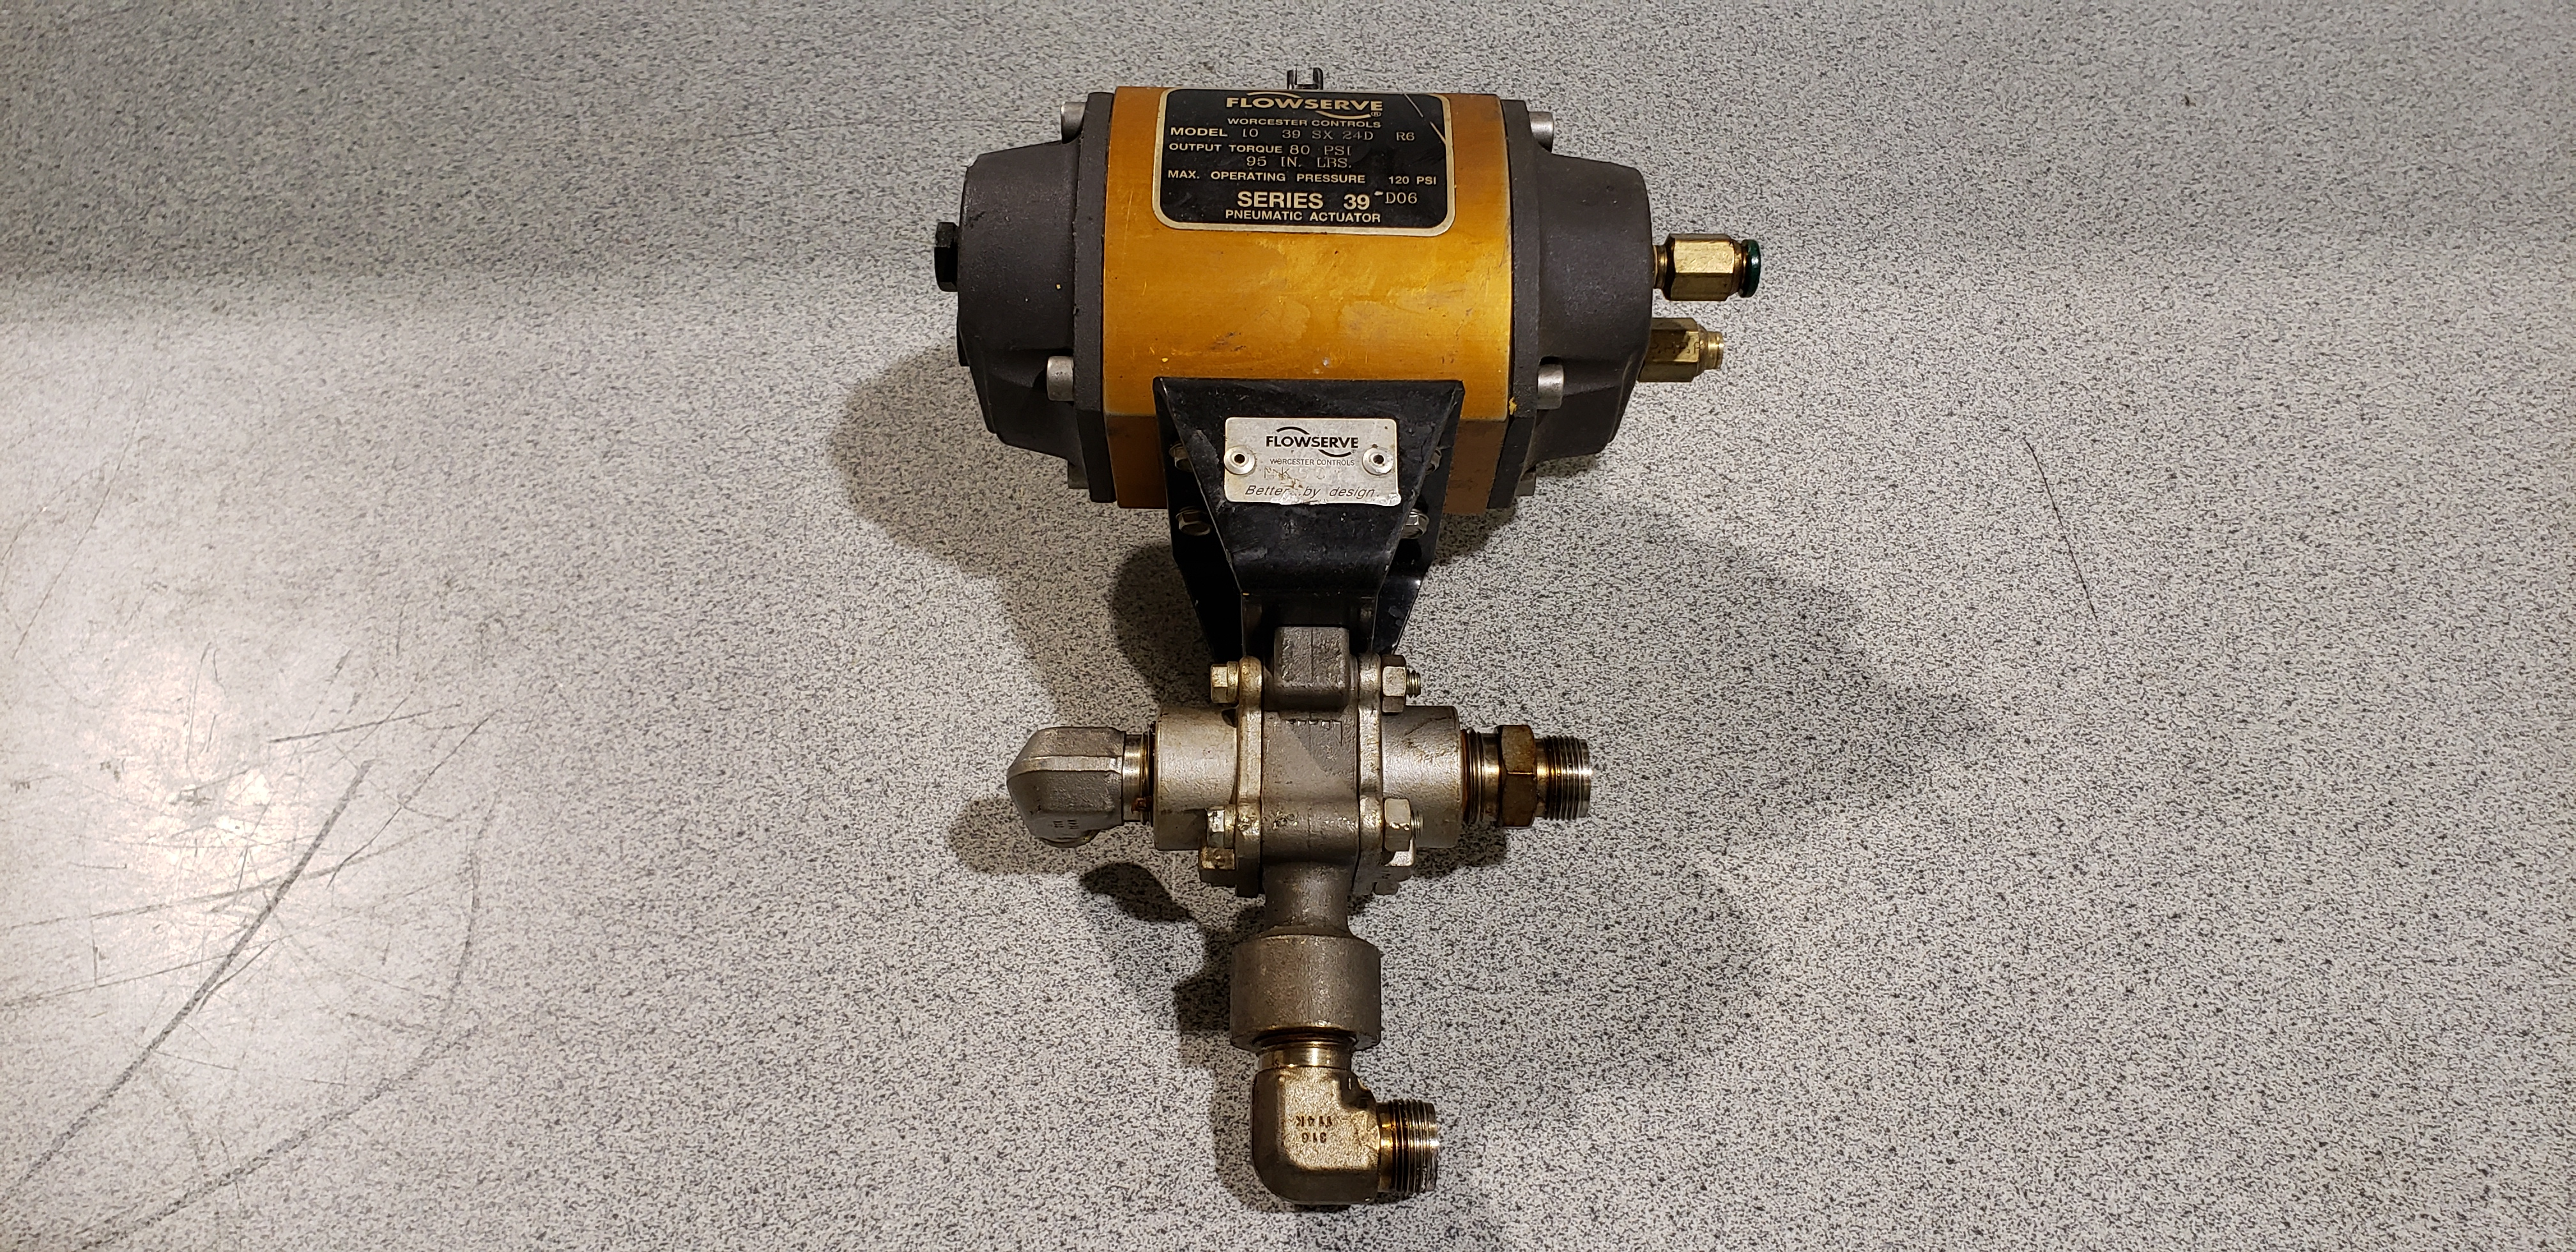 Flow Serve Pneumatic Actuator 10 39 SX 24D R6